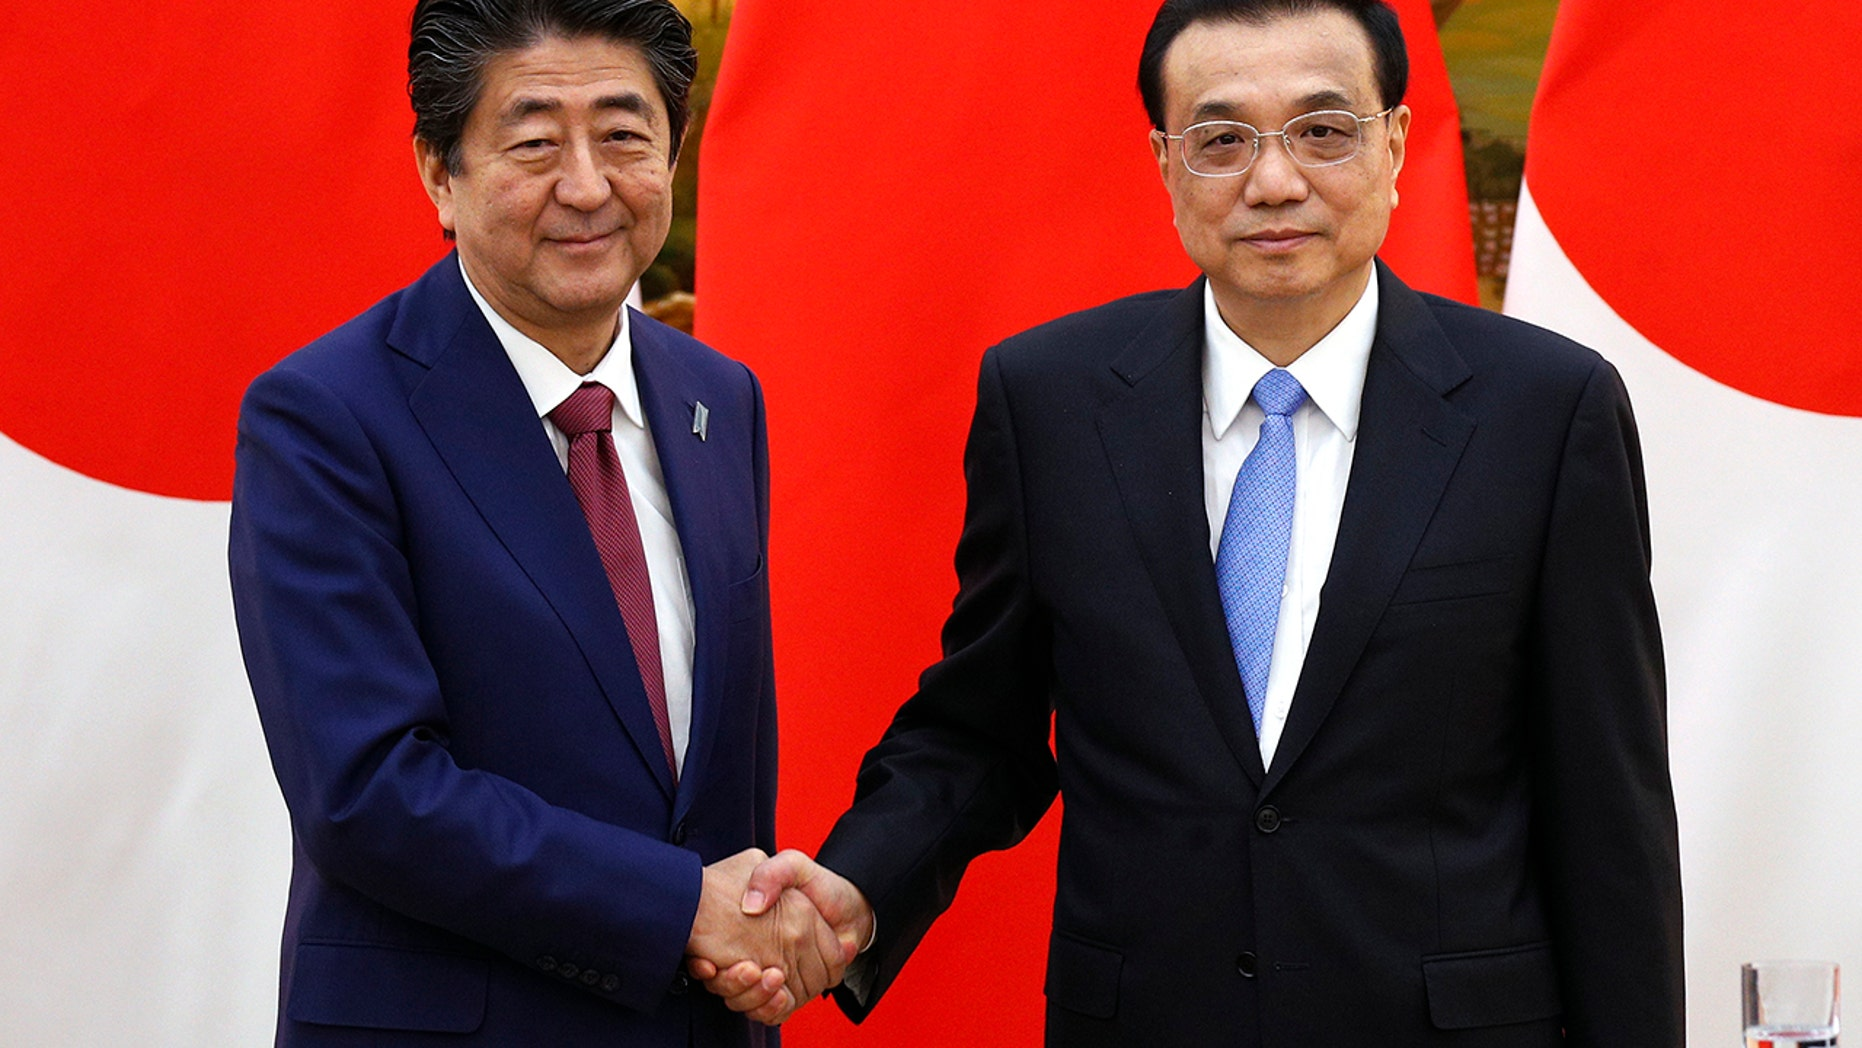 Japanese Prime Minister Shinzo Abe, left, shakes hands with Chinese Premier Li Keqiang after their joint news conference at the Great Hall of the People in Beijing, Friday, Oct. 26, 2018. (Associated Press)